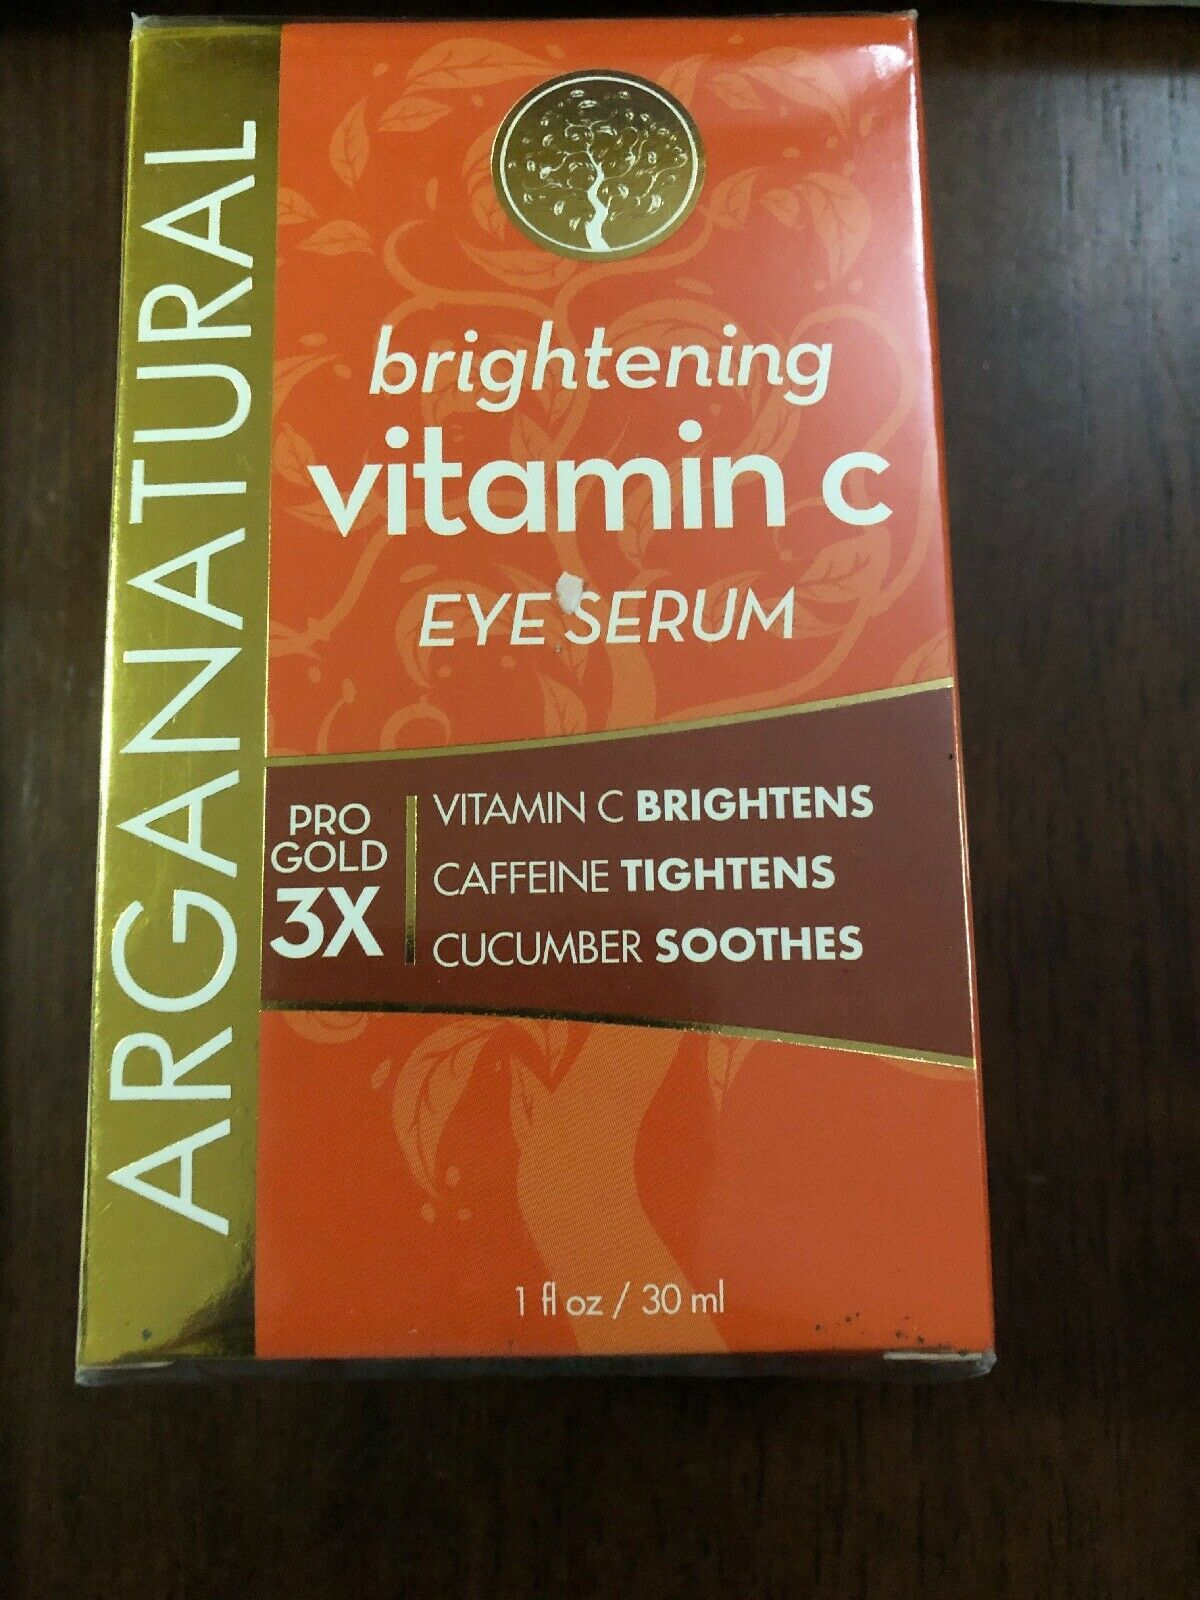 Arganatural Brightening Vitamin C Eye Serum Brand New Factory Sealed Vitamin C Serums Ideas Of Vitamin C Serums Vitaminc H Vitamin C Eye Serum Vitamins